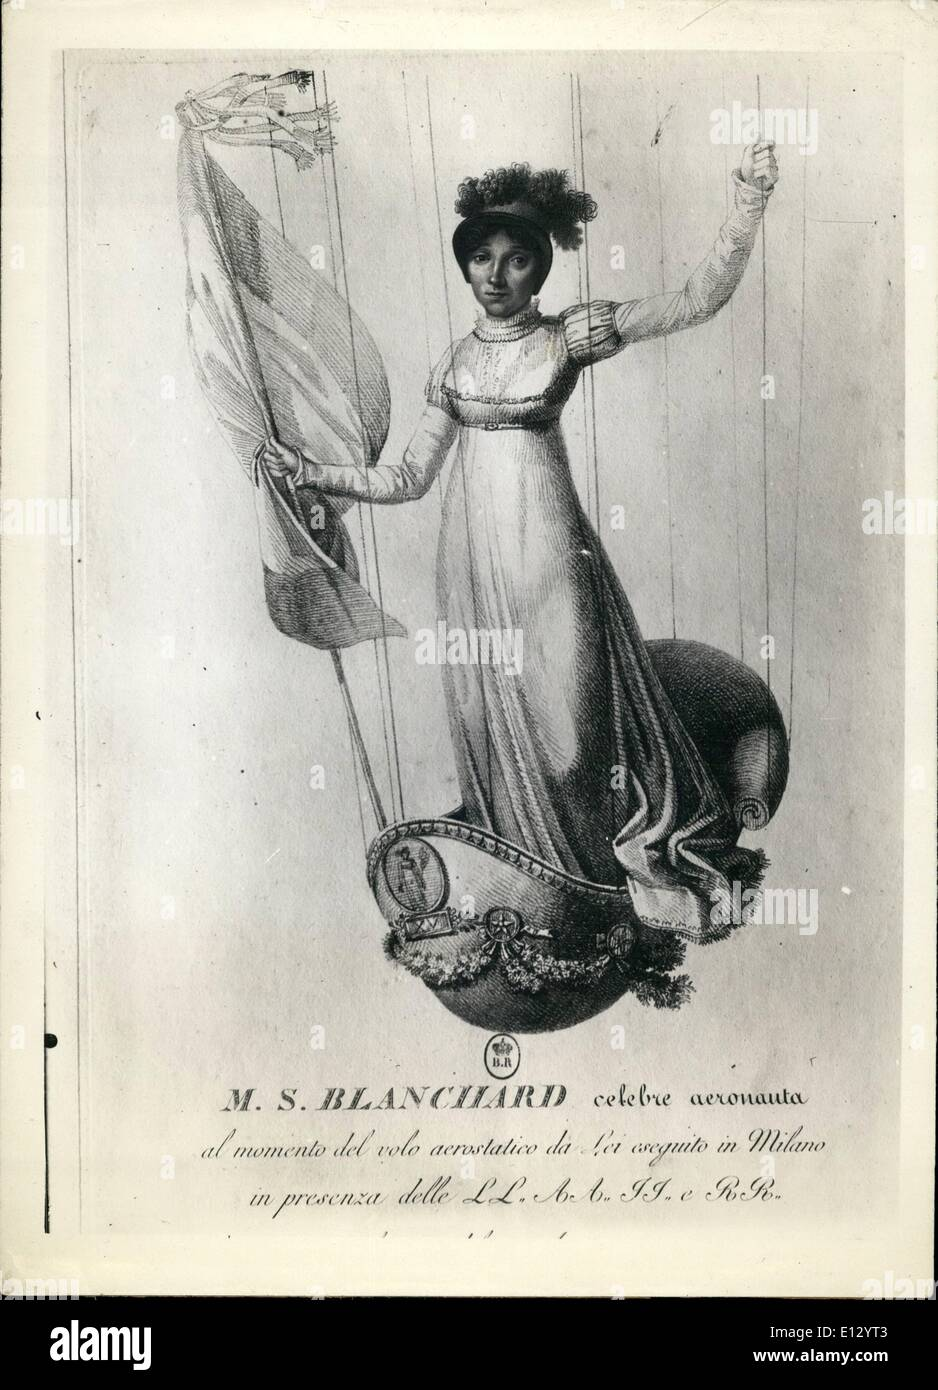 Feb. 26, 2012 - the Beginning Of the Aerostation: Marie Madeleine Sophie Armant, wife of the famous aeronaut Blanchard during an ascension. She was killed on July 1819 while attempting an ascension during the night. - Stock Image